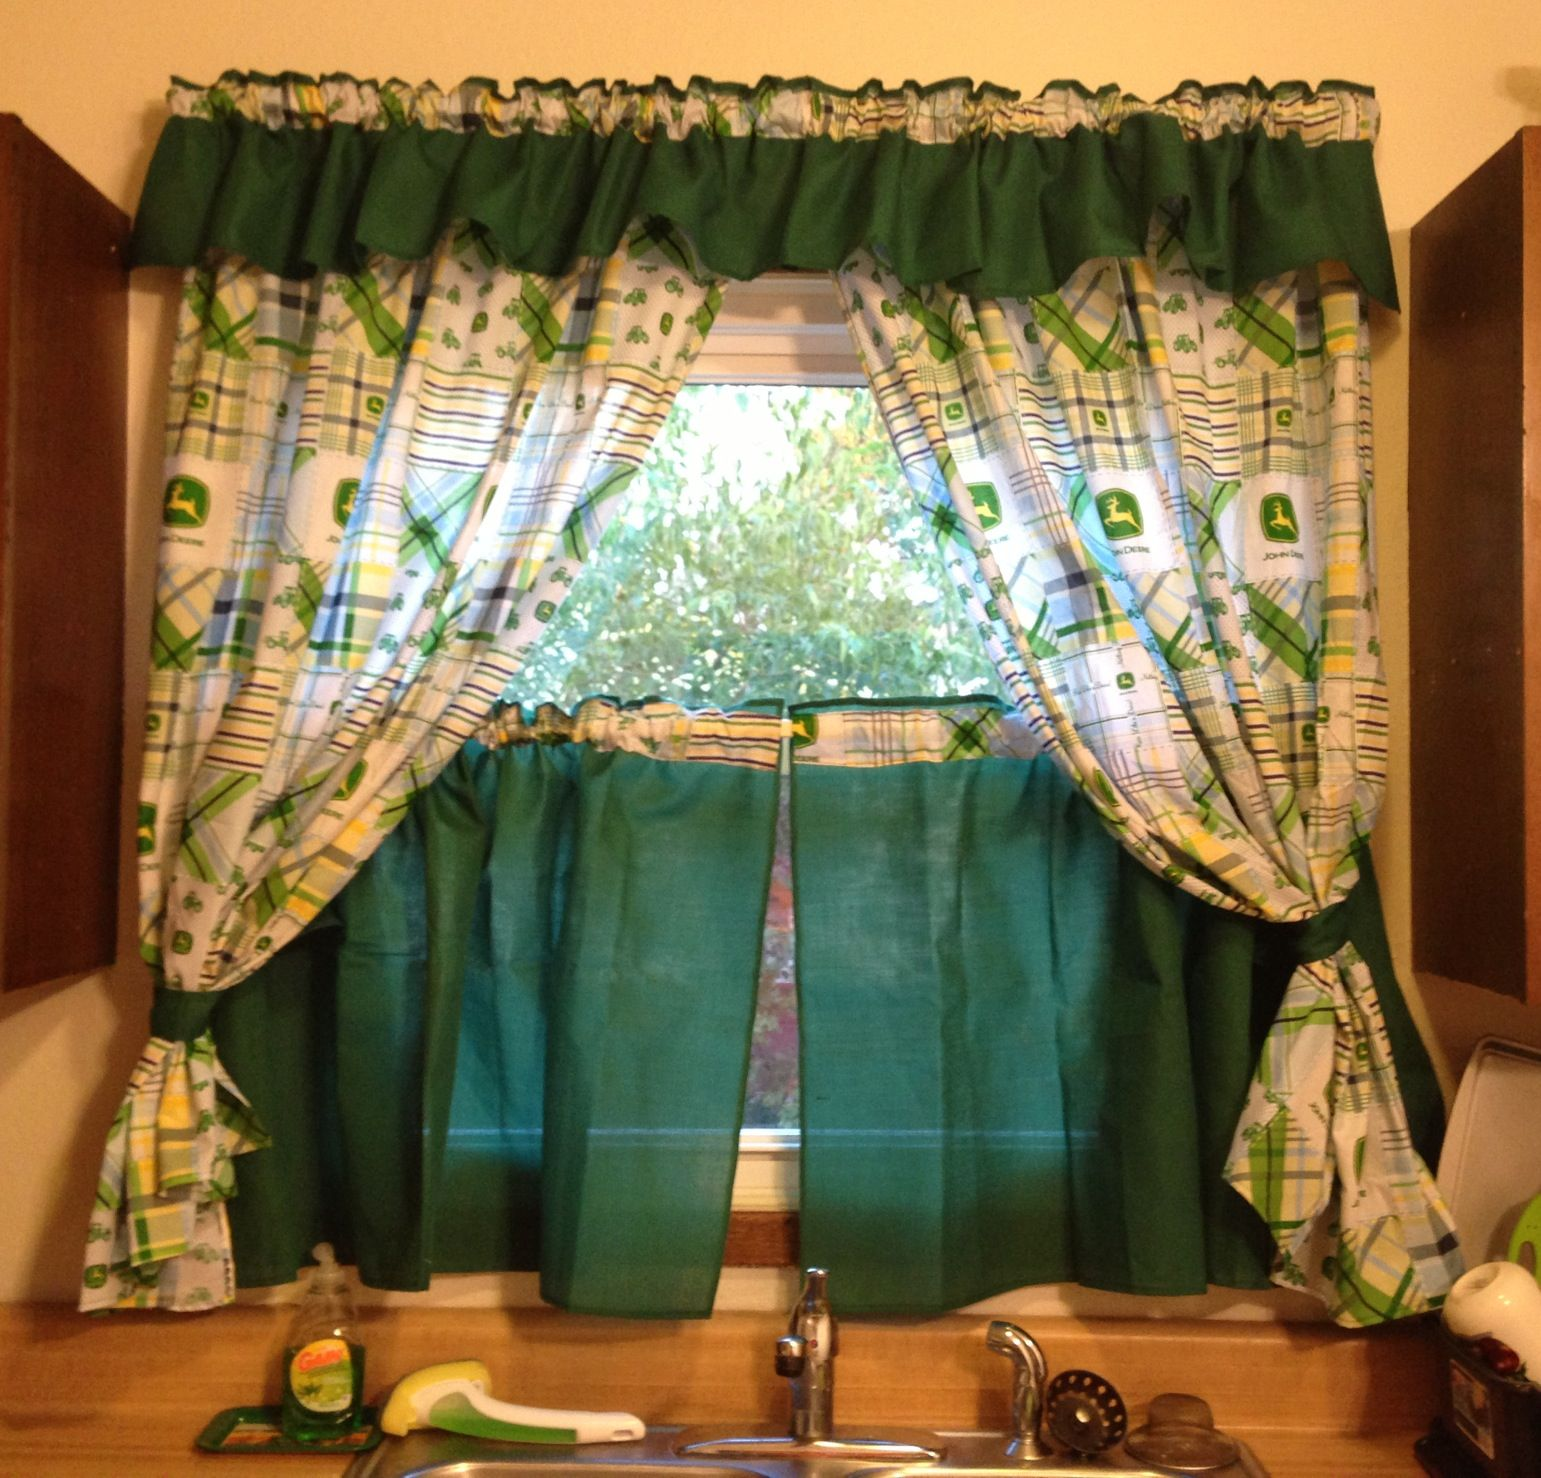 John Deere Kitchen Ideas: My NEW John Deere Kitchen Curtains! Love Them! ;D